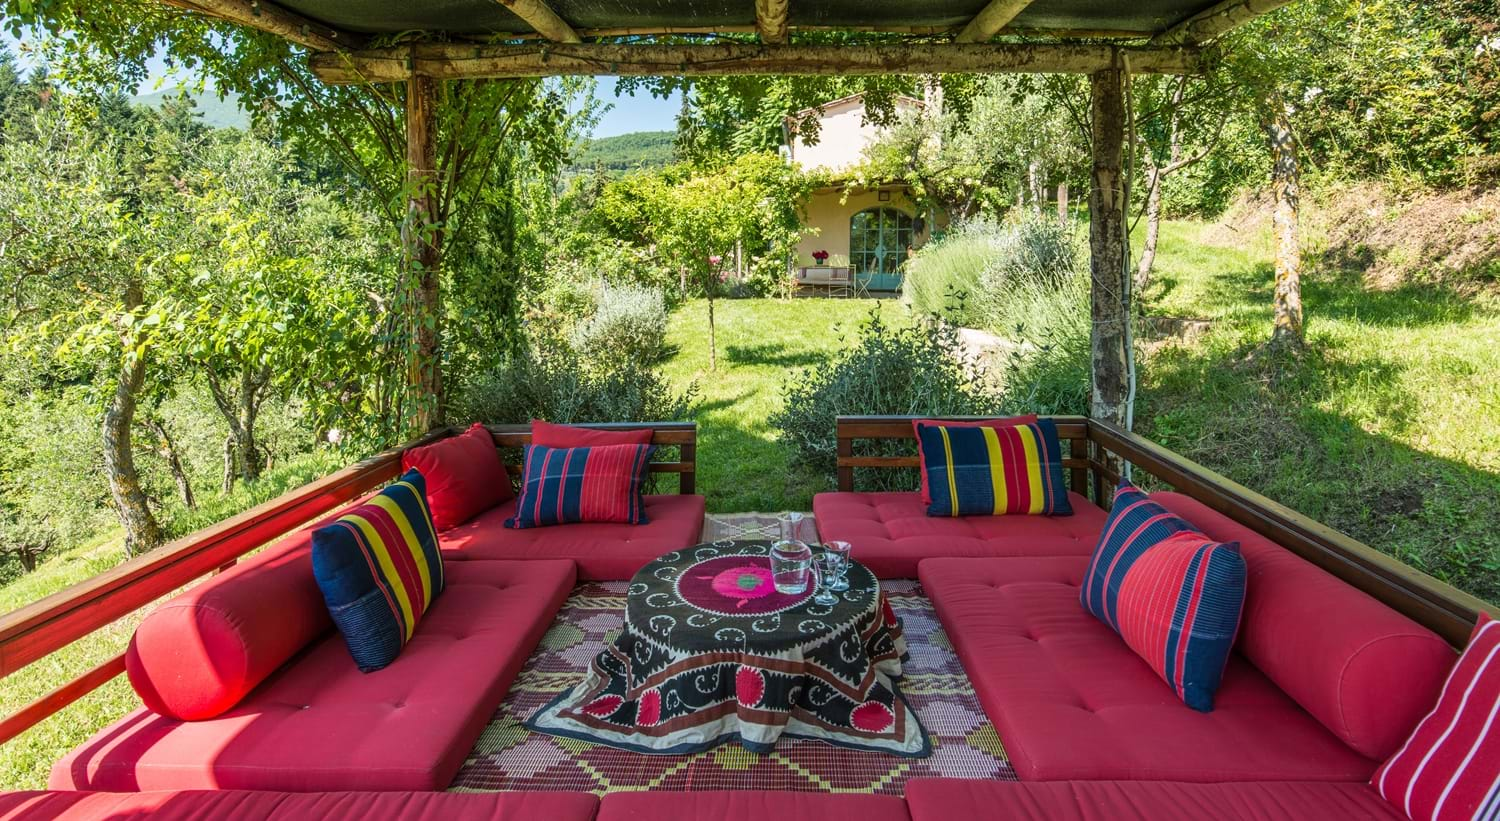 garden sofas and table under shaded patio surrounded by grass Villa La Torretta